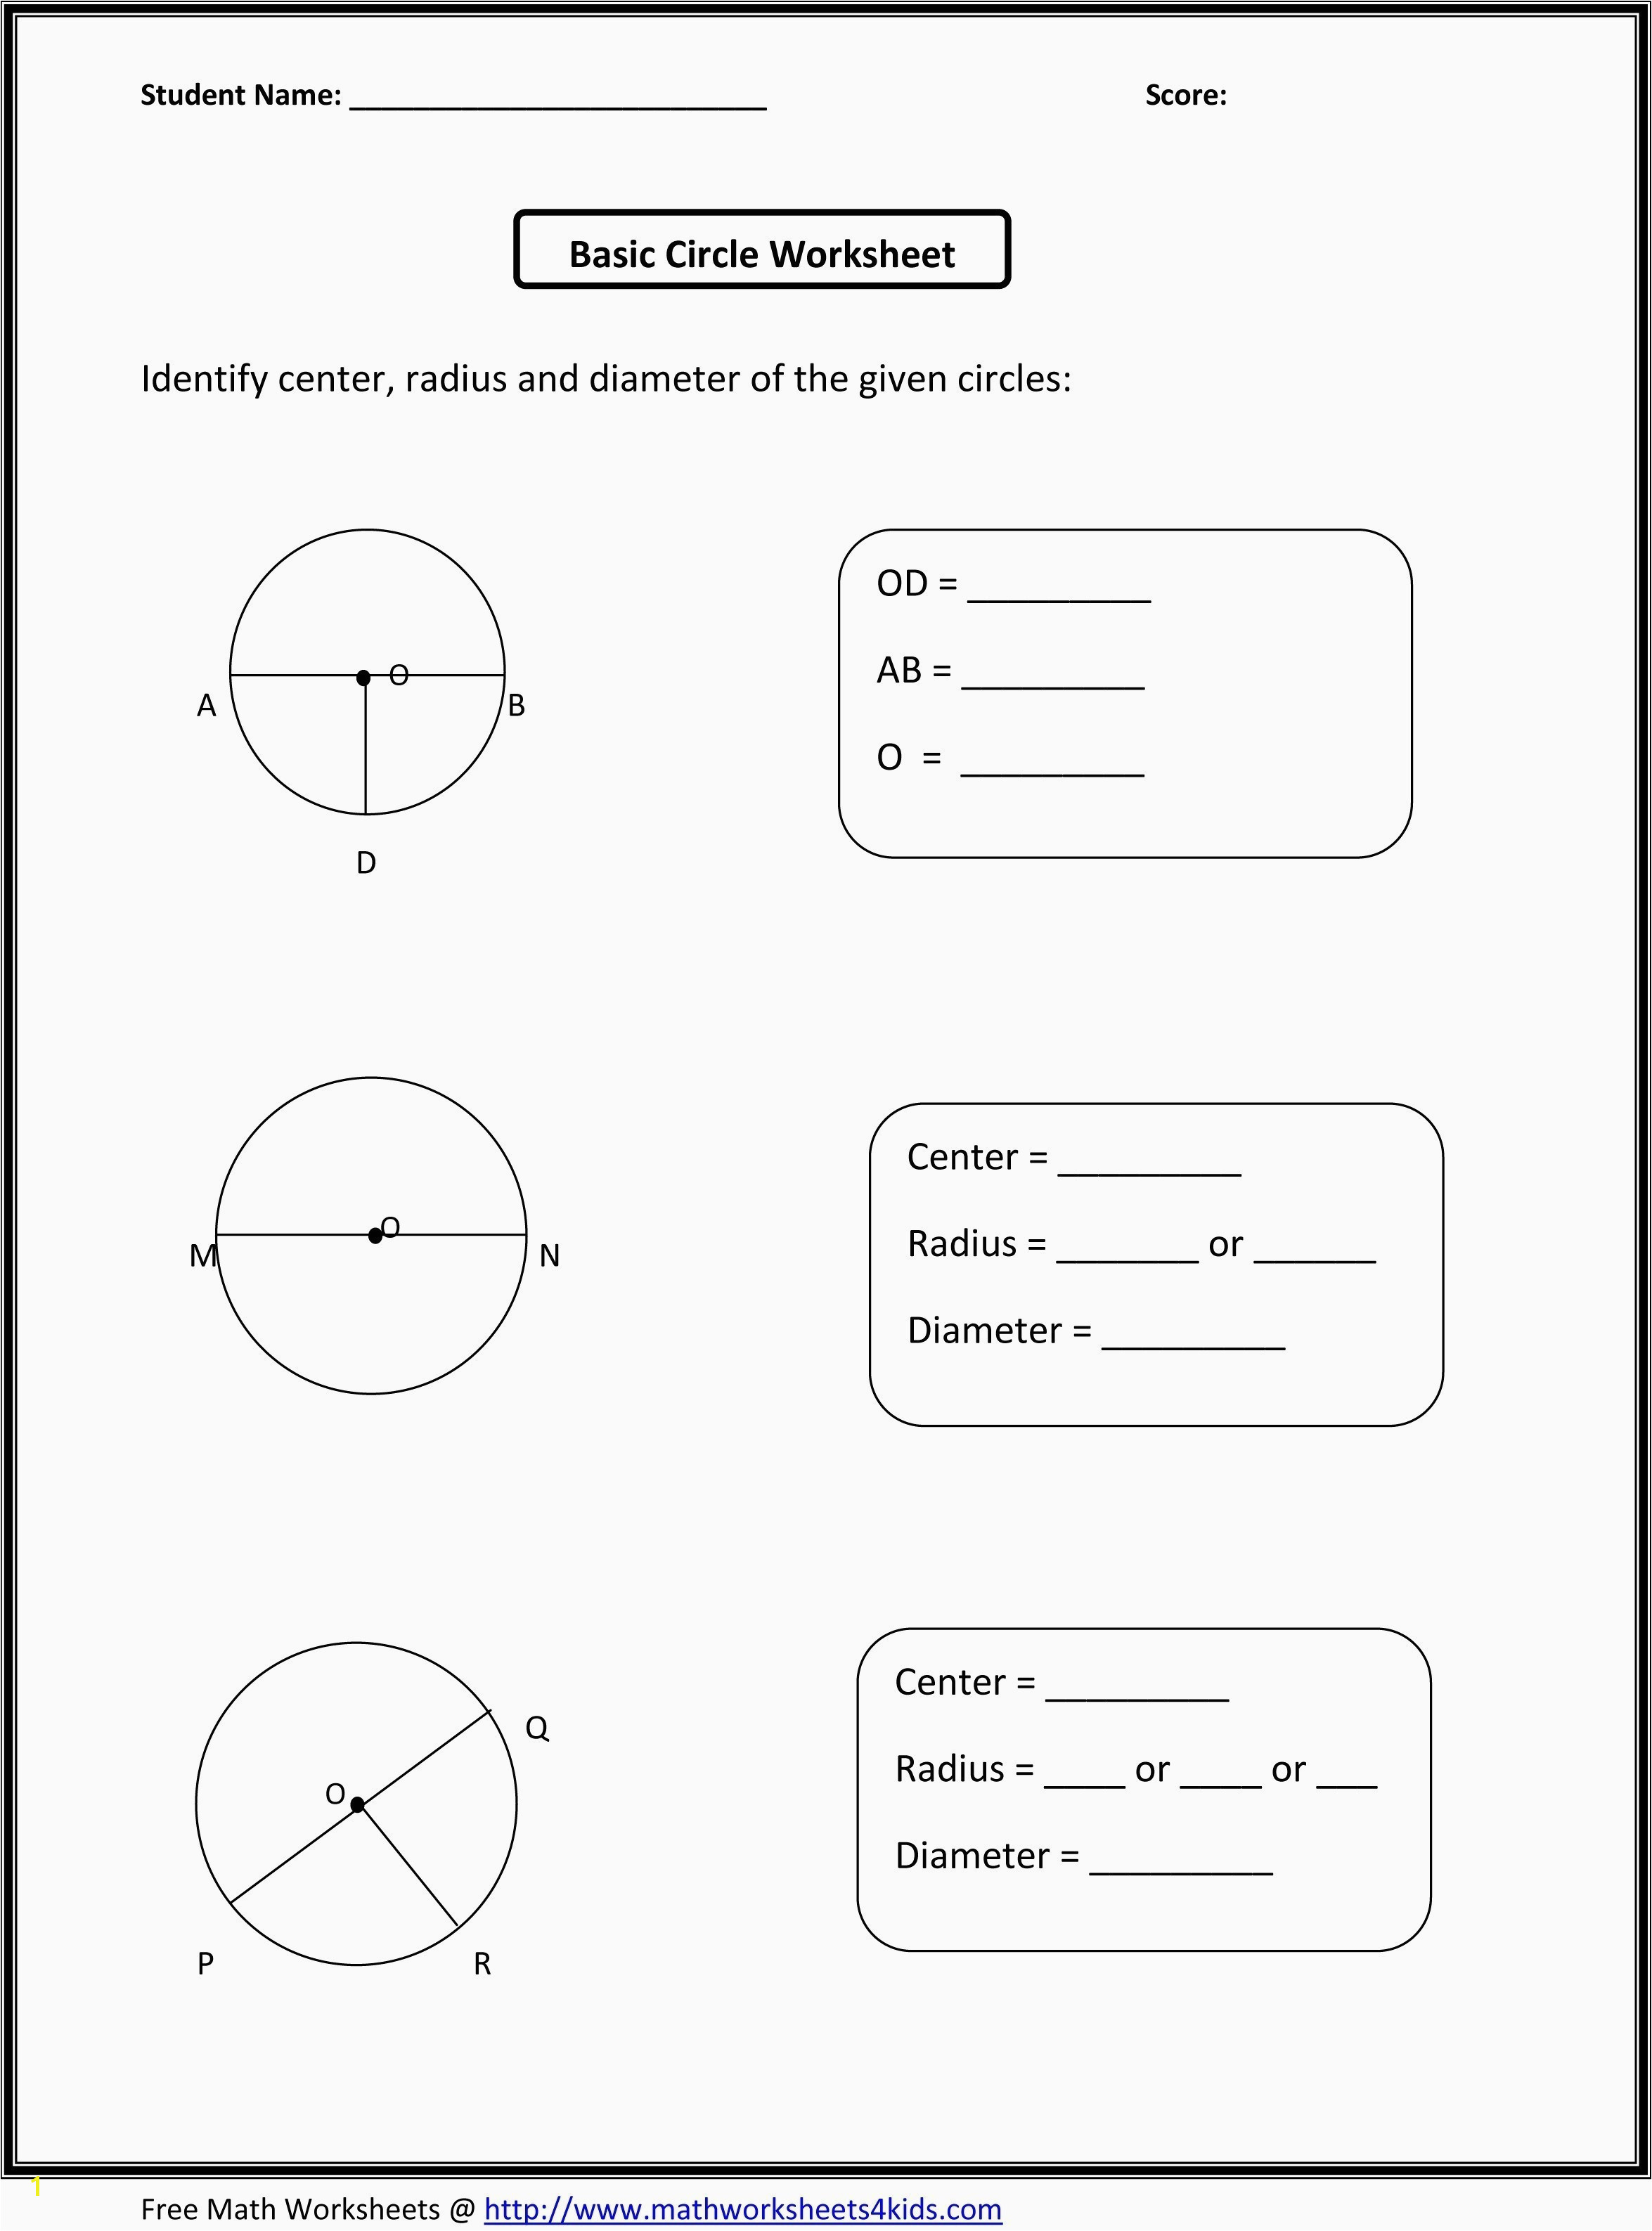 Free Printable Thanksgiving Math Worksheets for 3rd Grade New Third Grade Algebra Worksheets Fresh Find the